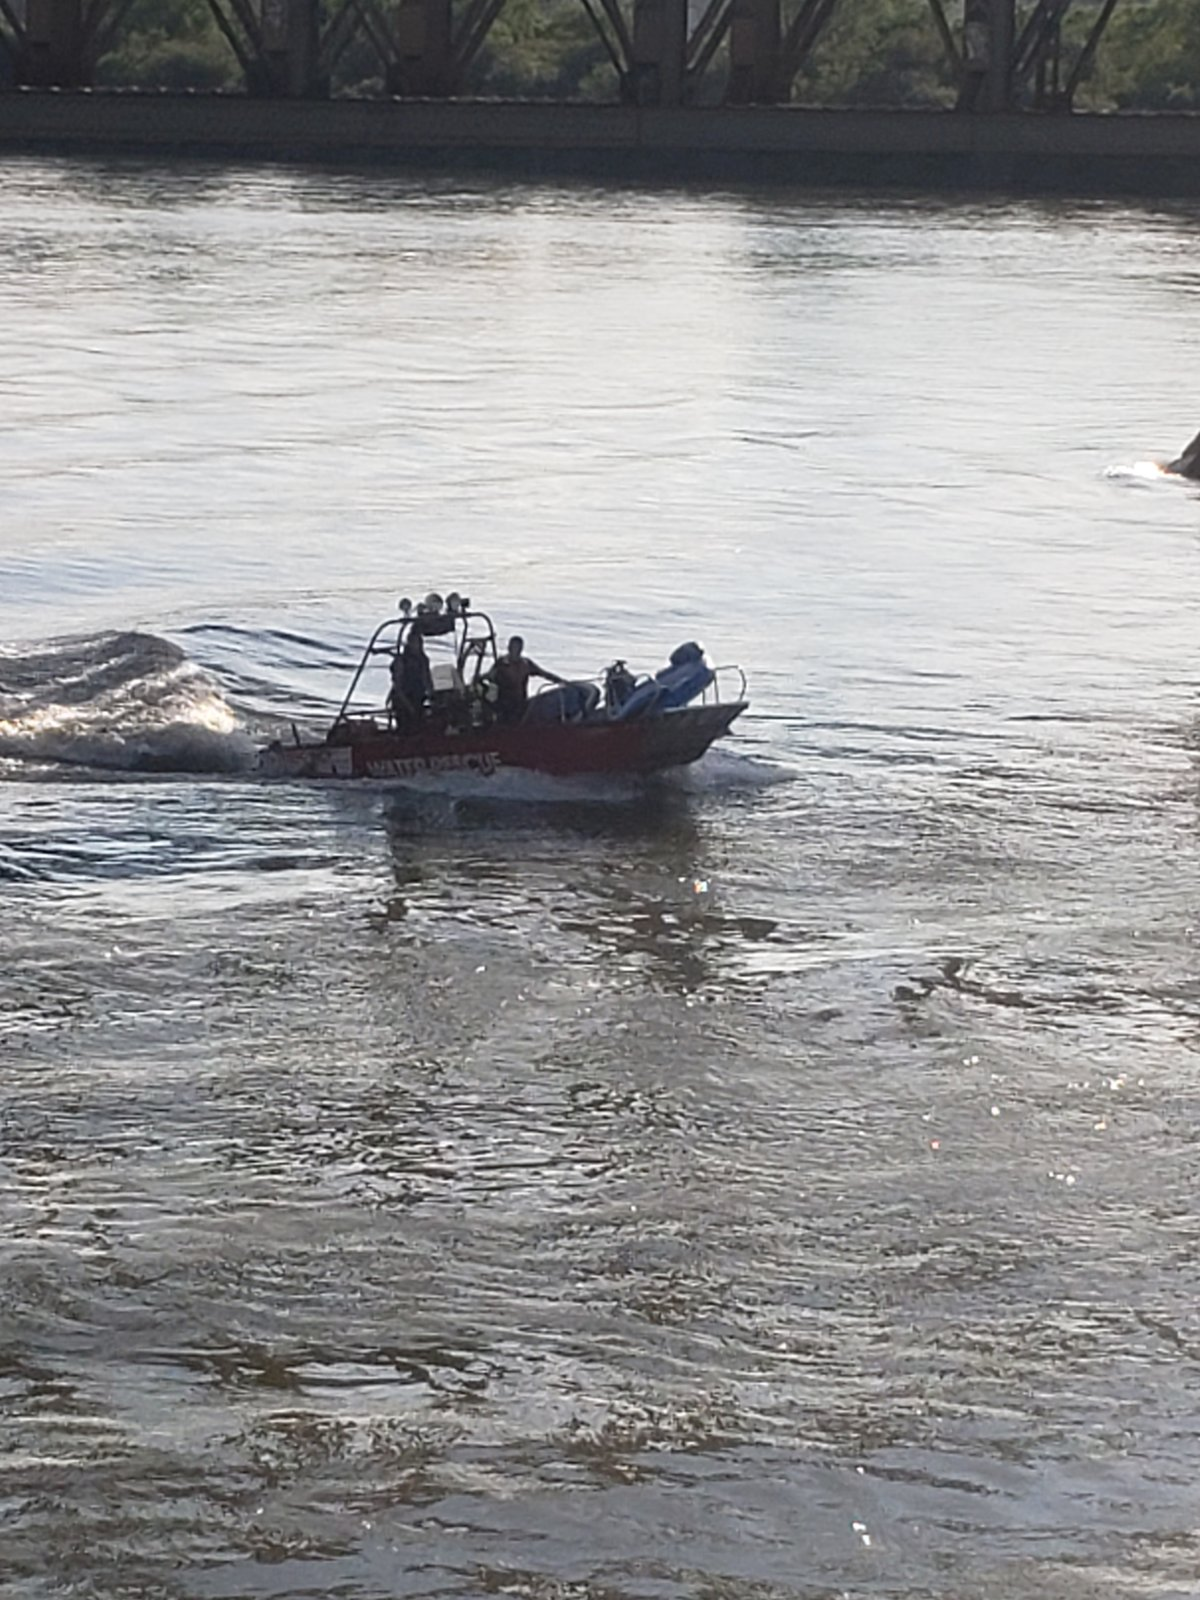 The Saskatoon Fire Department said in rescued five people from the fast flowing South Saskatchewan River in two separate water rescues.